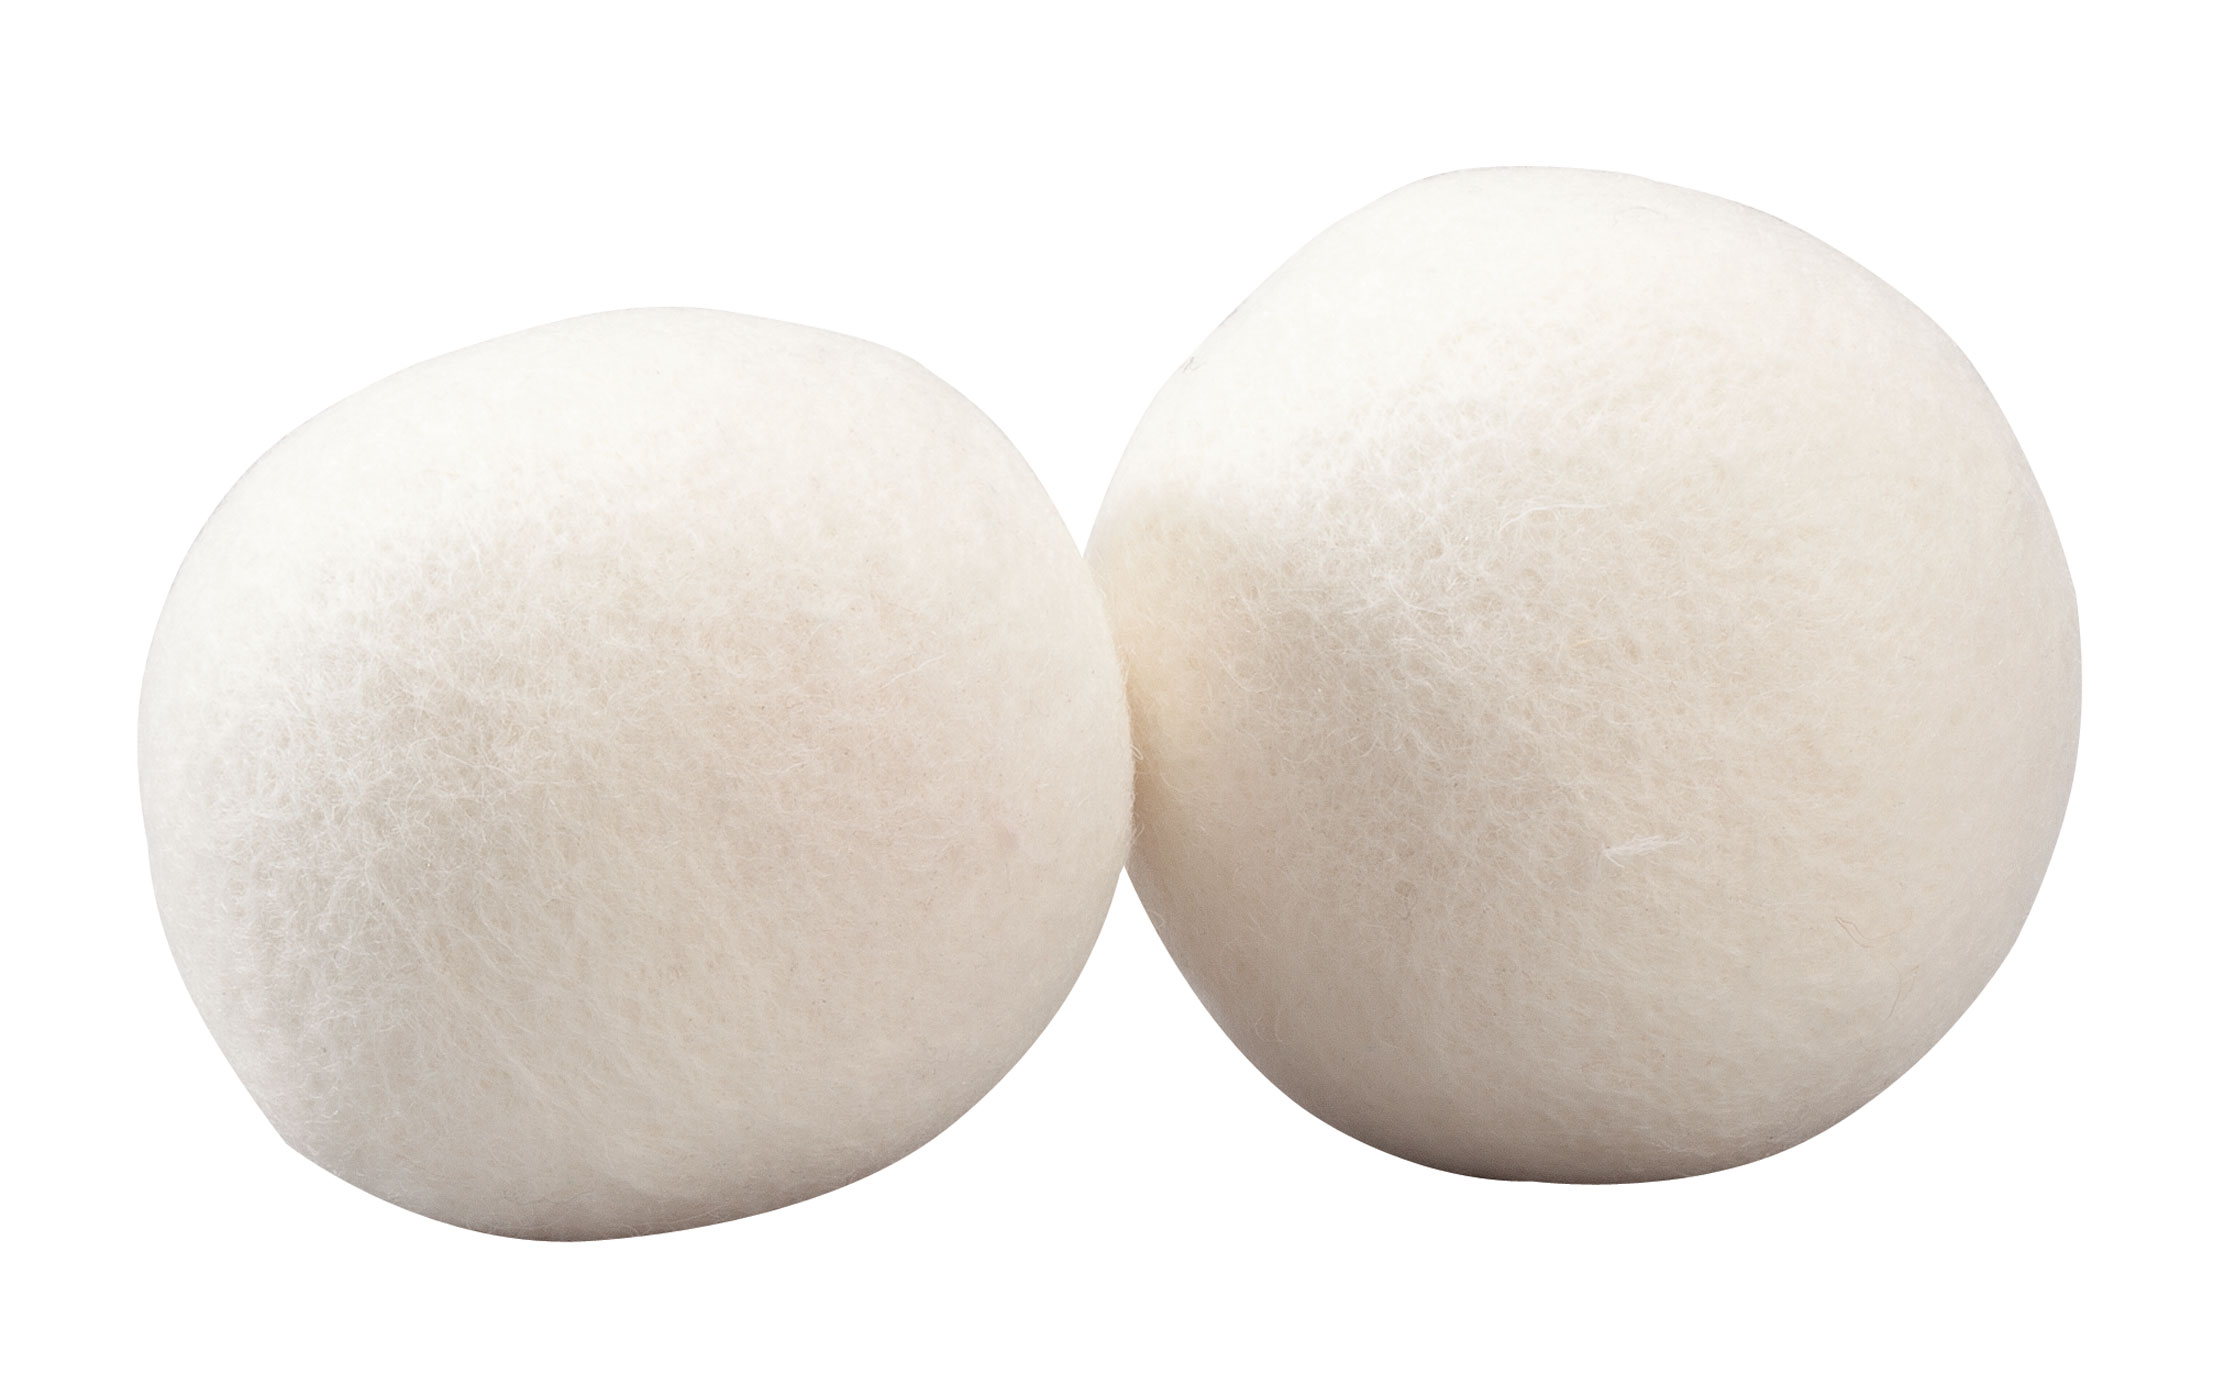 Sheep's Wool Dryer Balls, Set of 2 Sheep's wool dryer balls naturally reduce static and drying time while keeping clothes soft and fresh. Made of 100% pure wool, they tumble along with your clothing and blankets, keeping them from twisting together. Add a few drops of your favorite essential oil to each wool ball and enjoy lightly scented laundry -- no more buying disposable sheets with harsh chemicals. Set of 2 laundry balls, each approx. 3  dia. Imported.